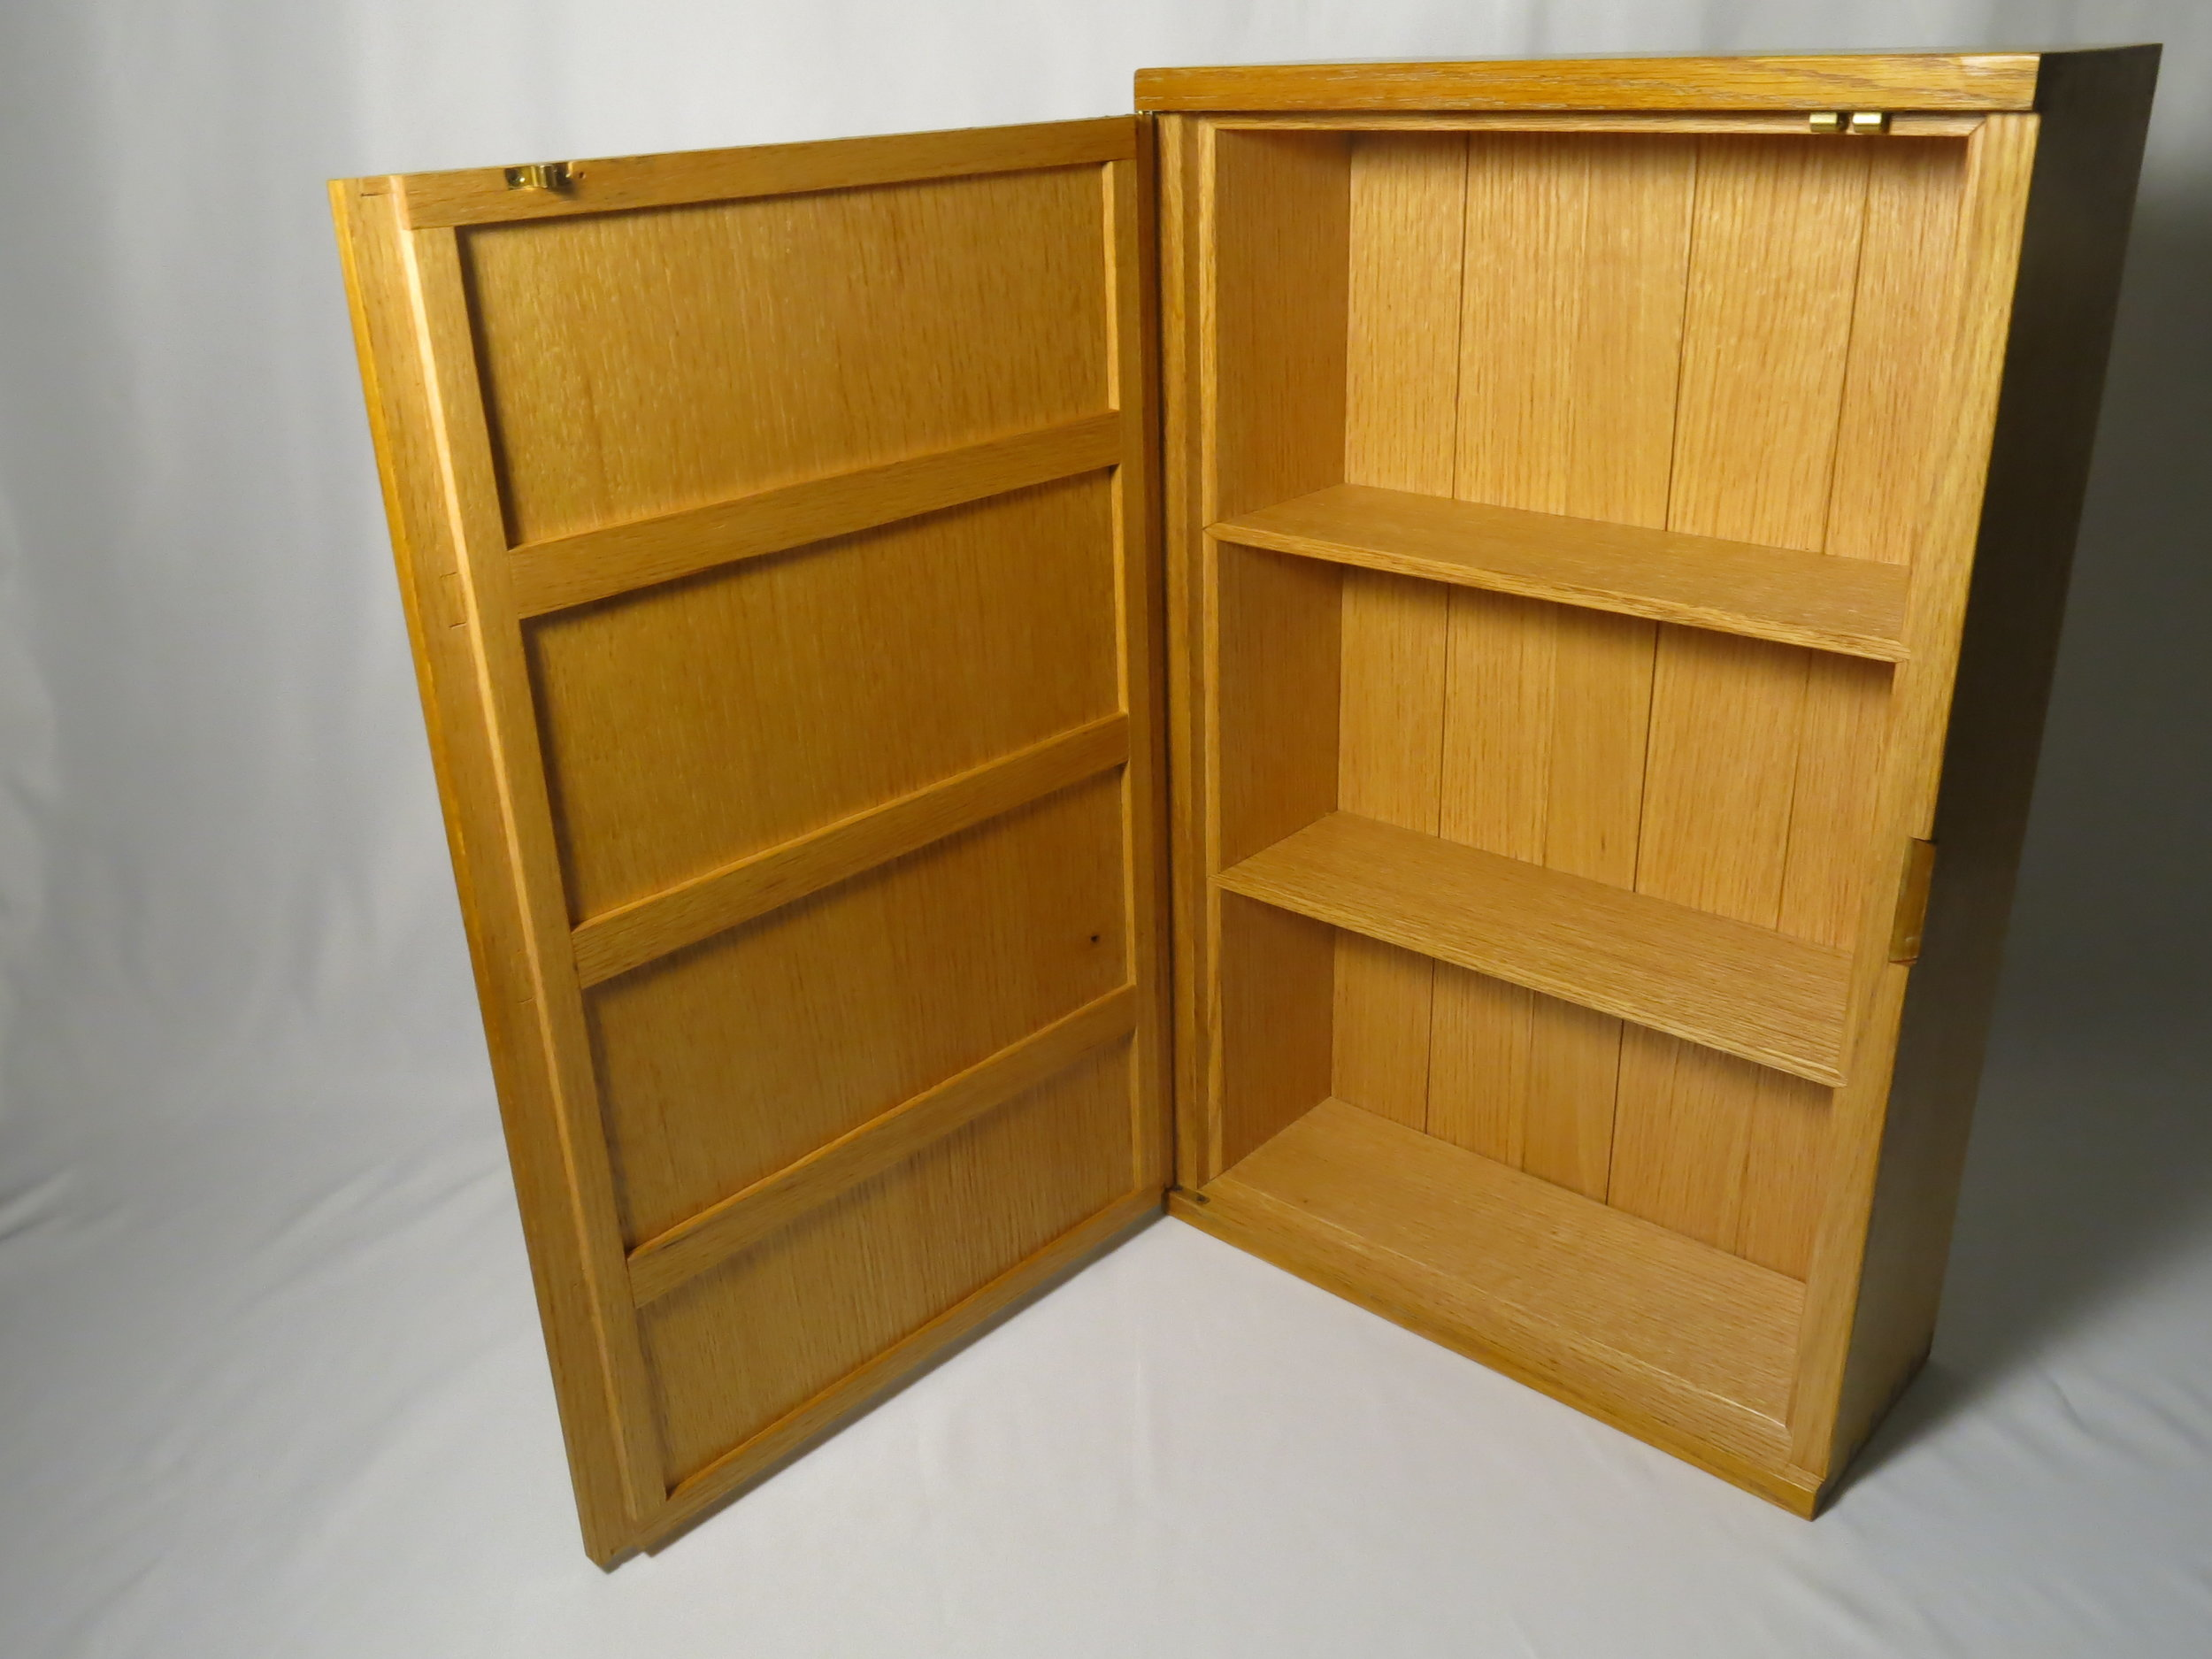 2017 Wall Cabinets (Red oak and Beech)